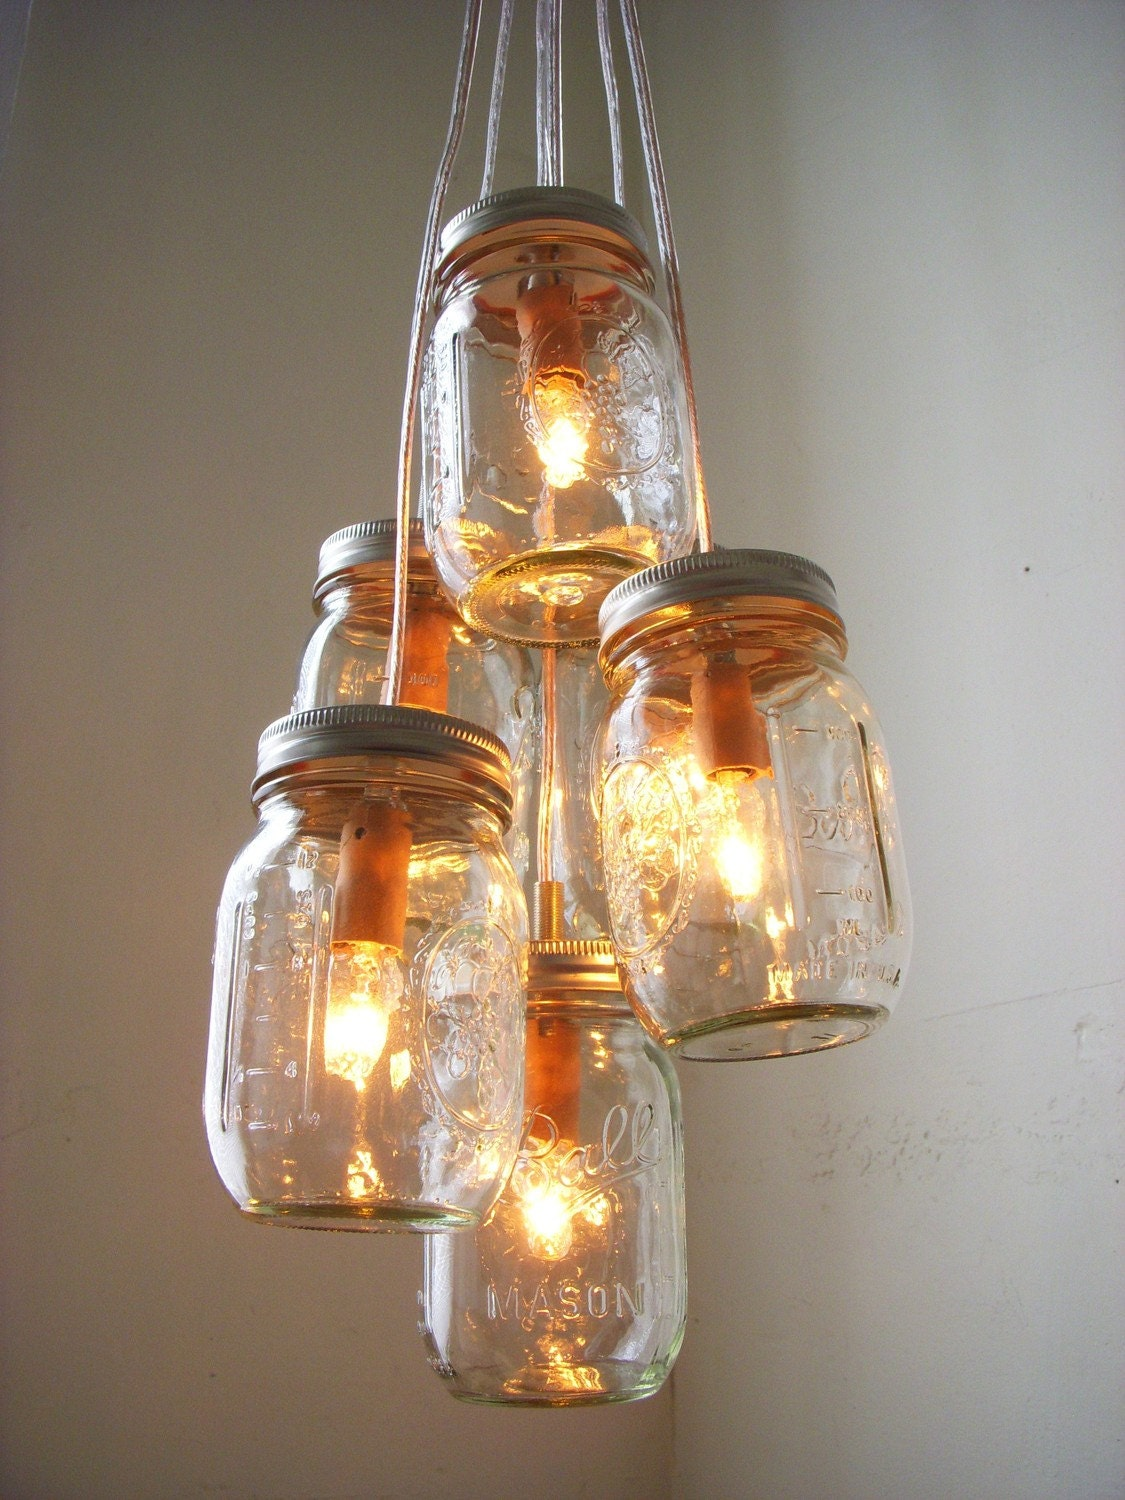 Mason jar lights christmas lights for Vintage lampen